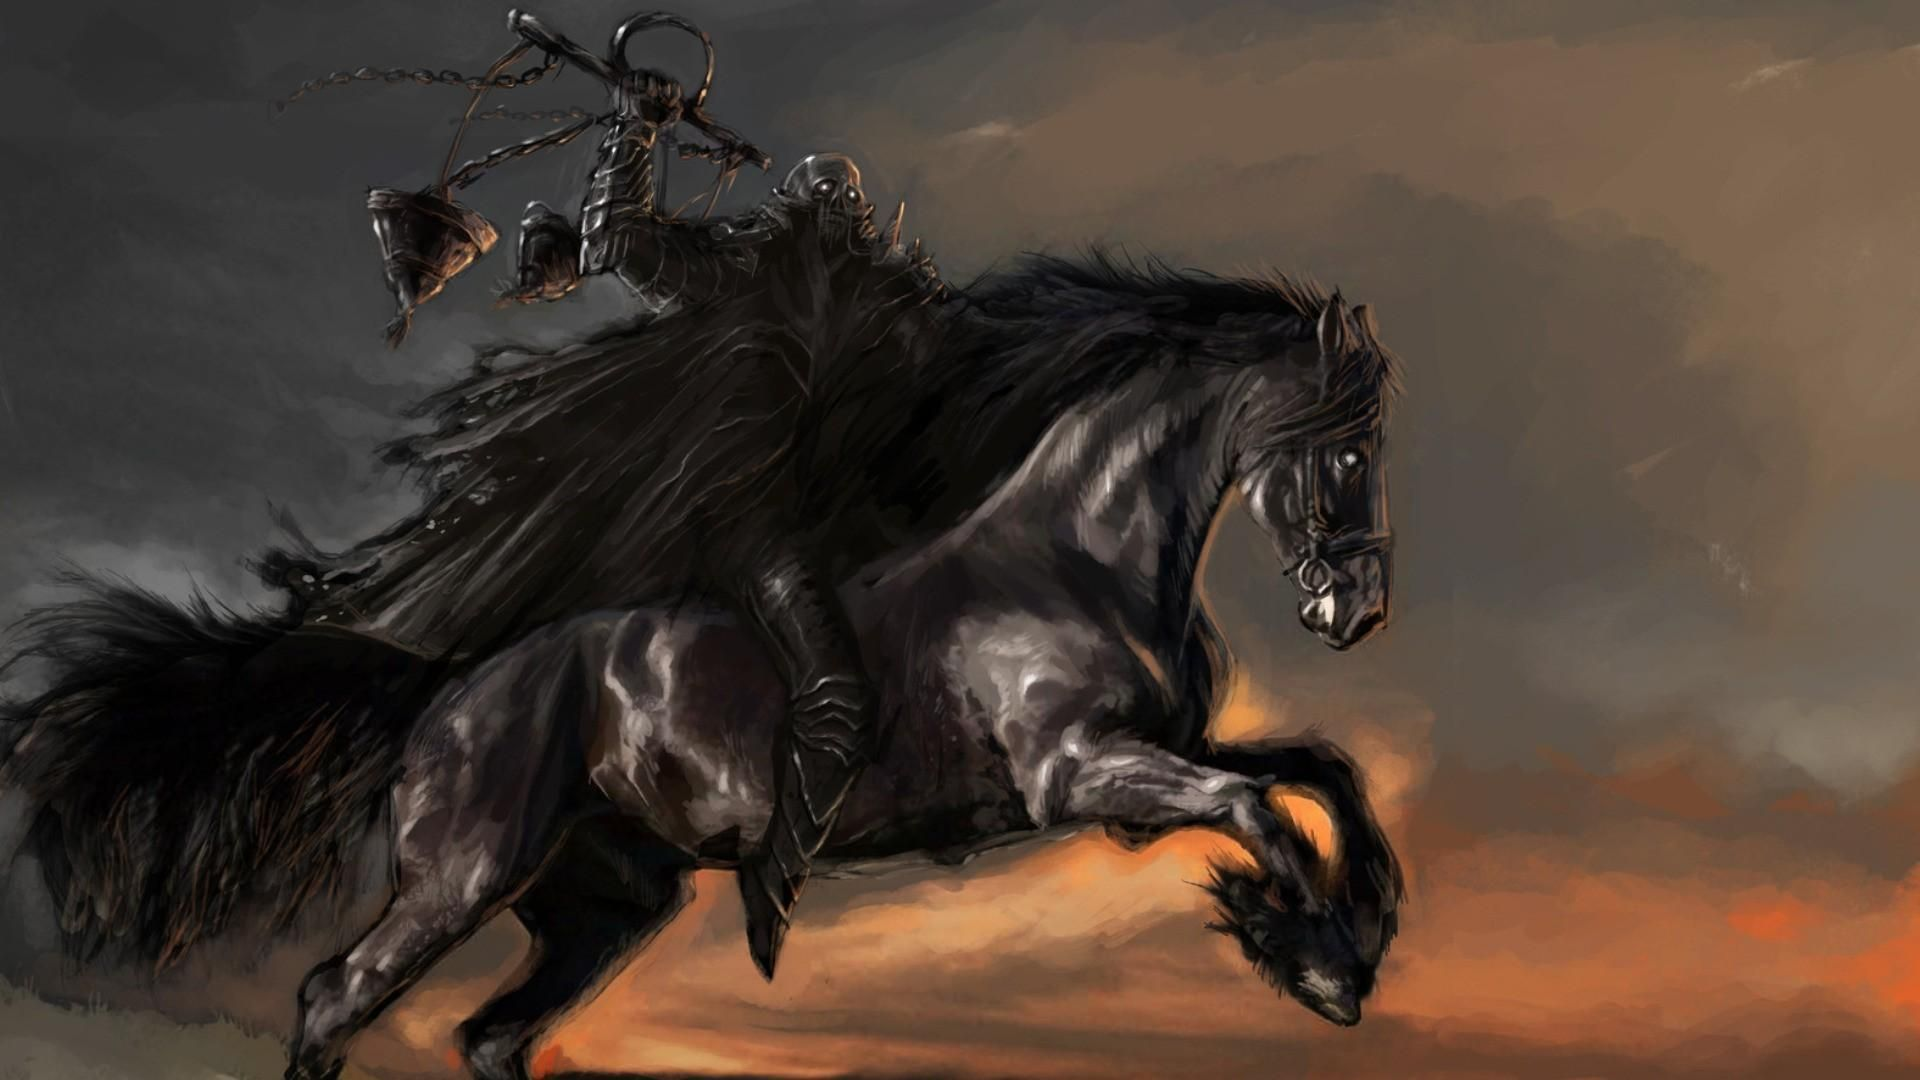 Best Knight on horseback stand on cliff Wallpapers 8 Images 1920x1080